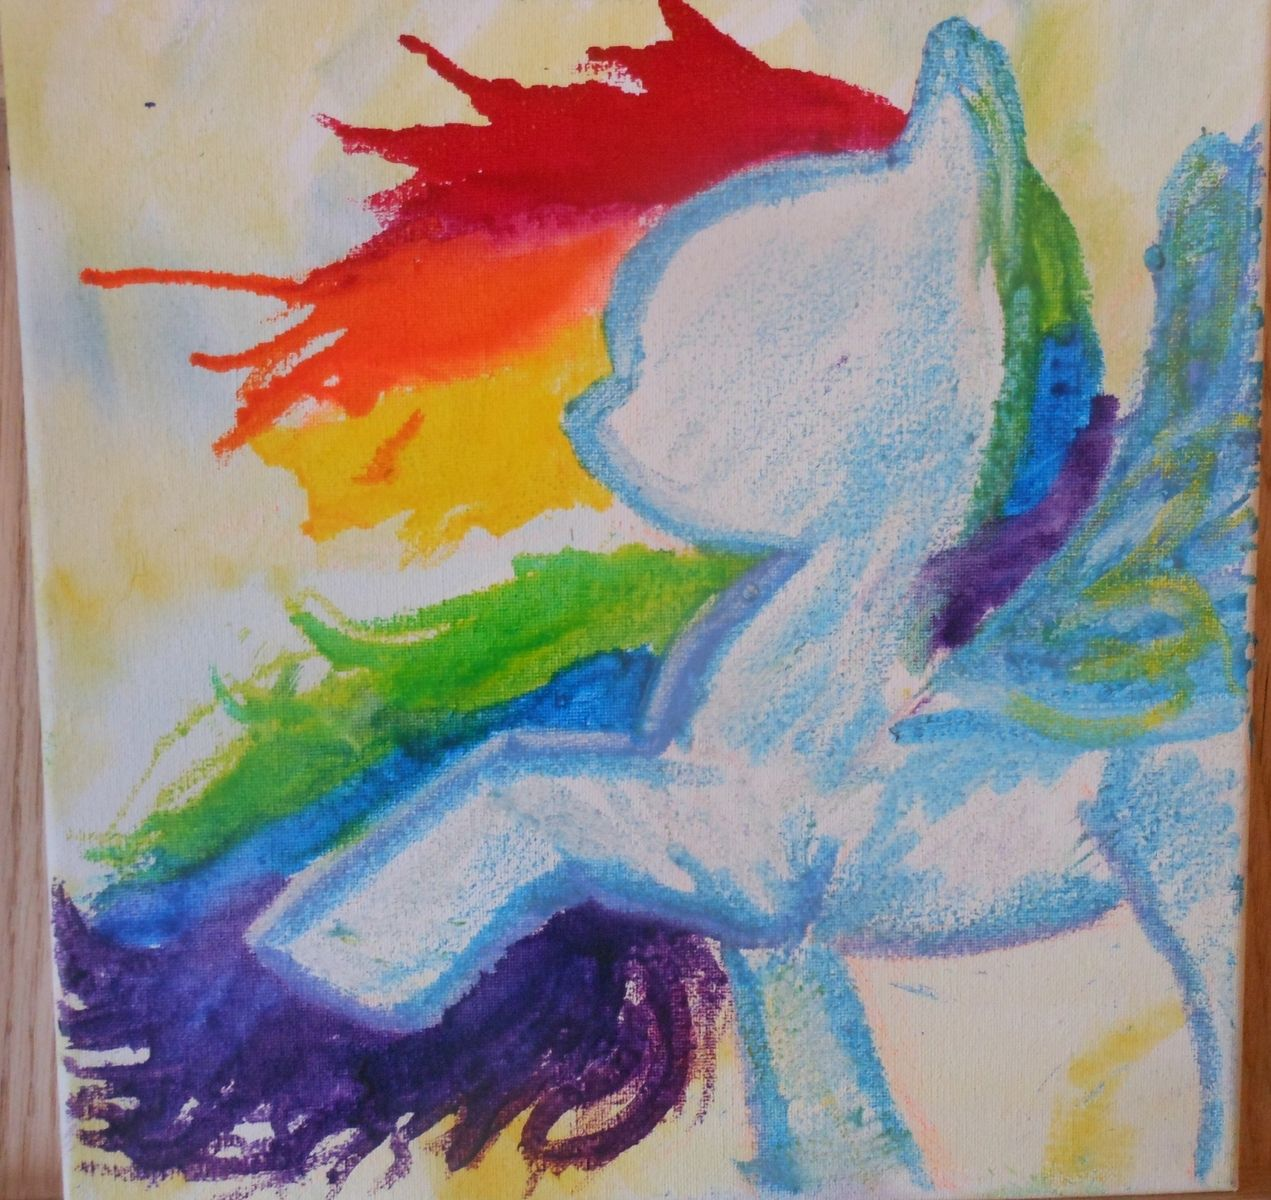 Hand Made Melted Crayon Art By Artisinmyheart Custommade Com